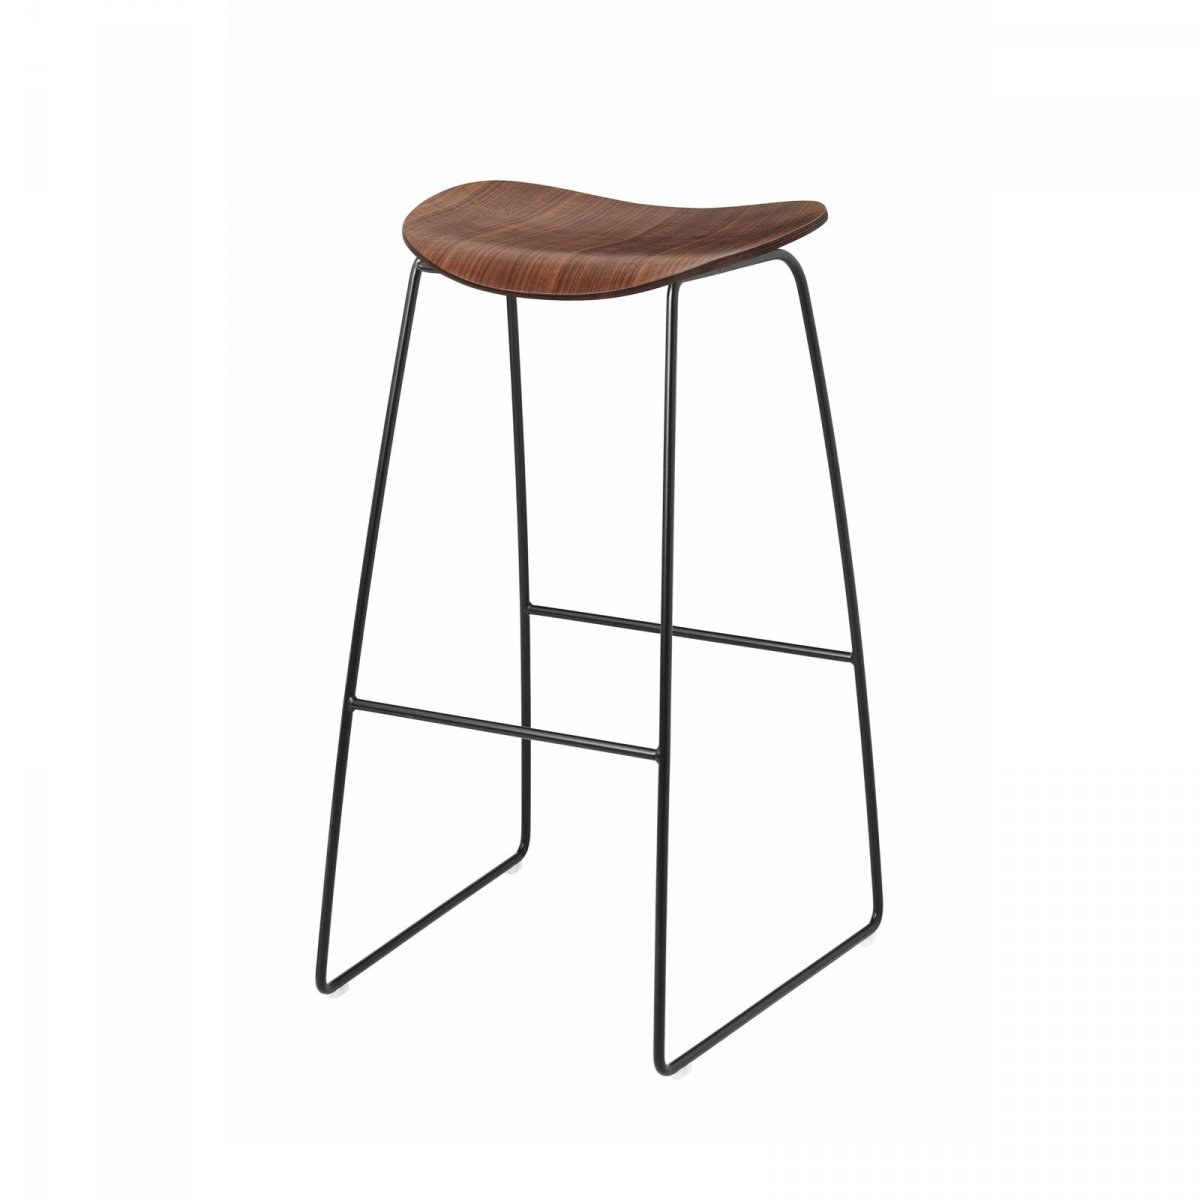 Gubi 2D Stool Sled Base, walnut + black.